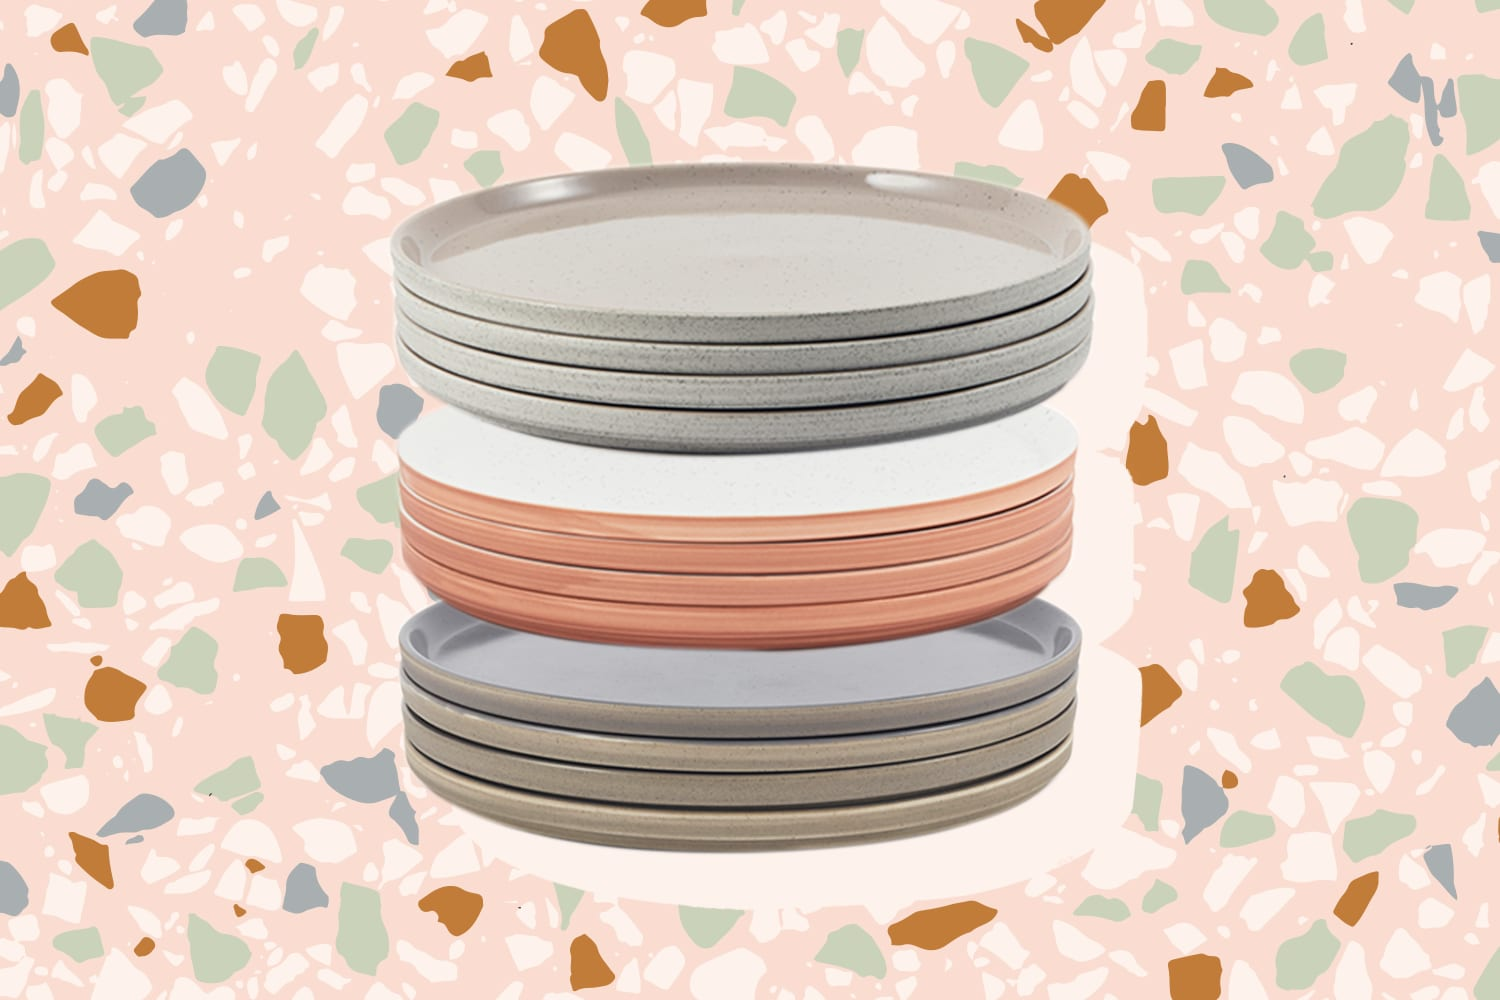 The Inexpensive, Hand-Painted Porcelain Dinner Plates That Everyone Should Be Talking About